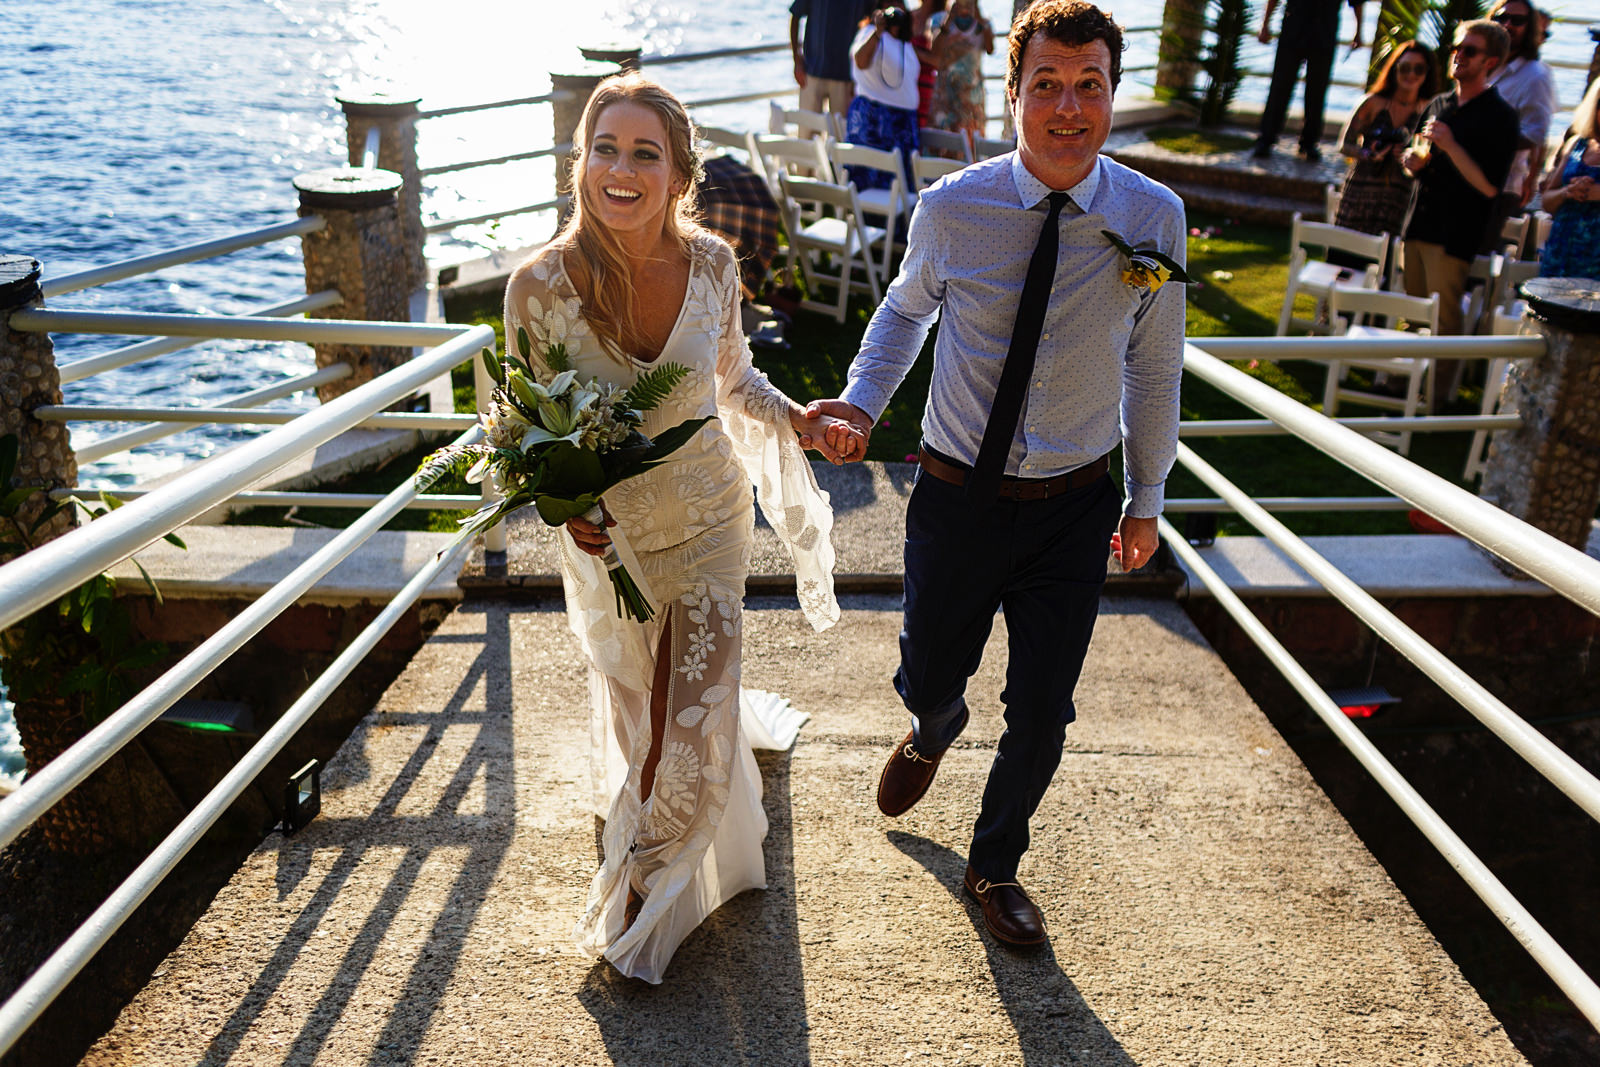 Bride and groom exit the ceremony through the bridge that connects Le Kliff restaurant with the ceremony platform